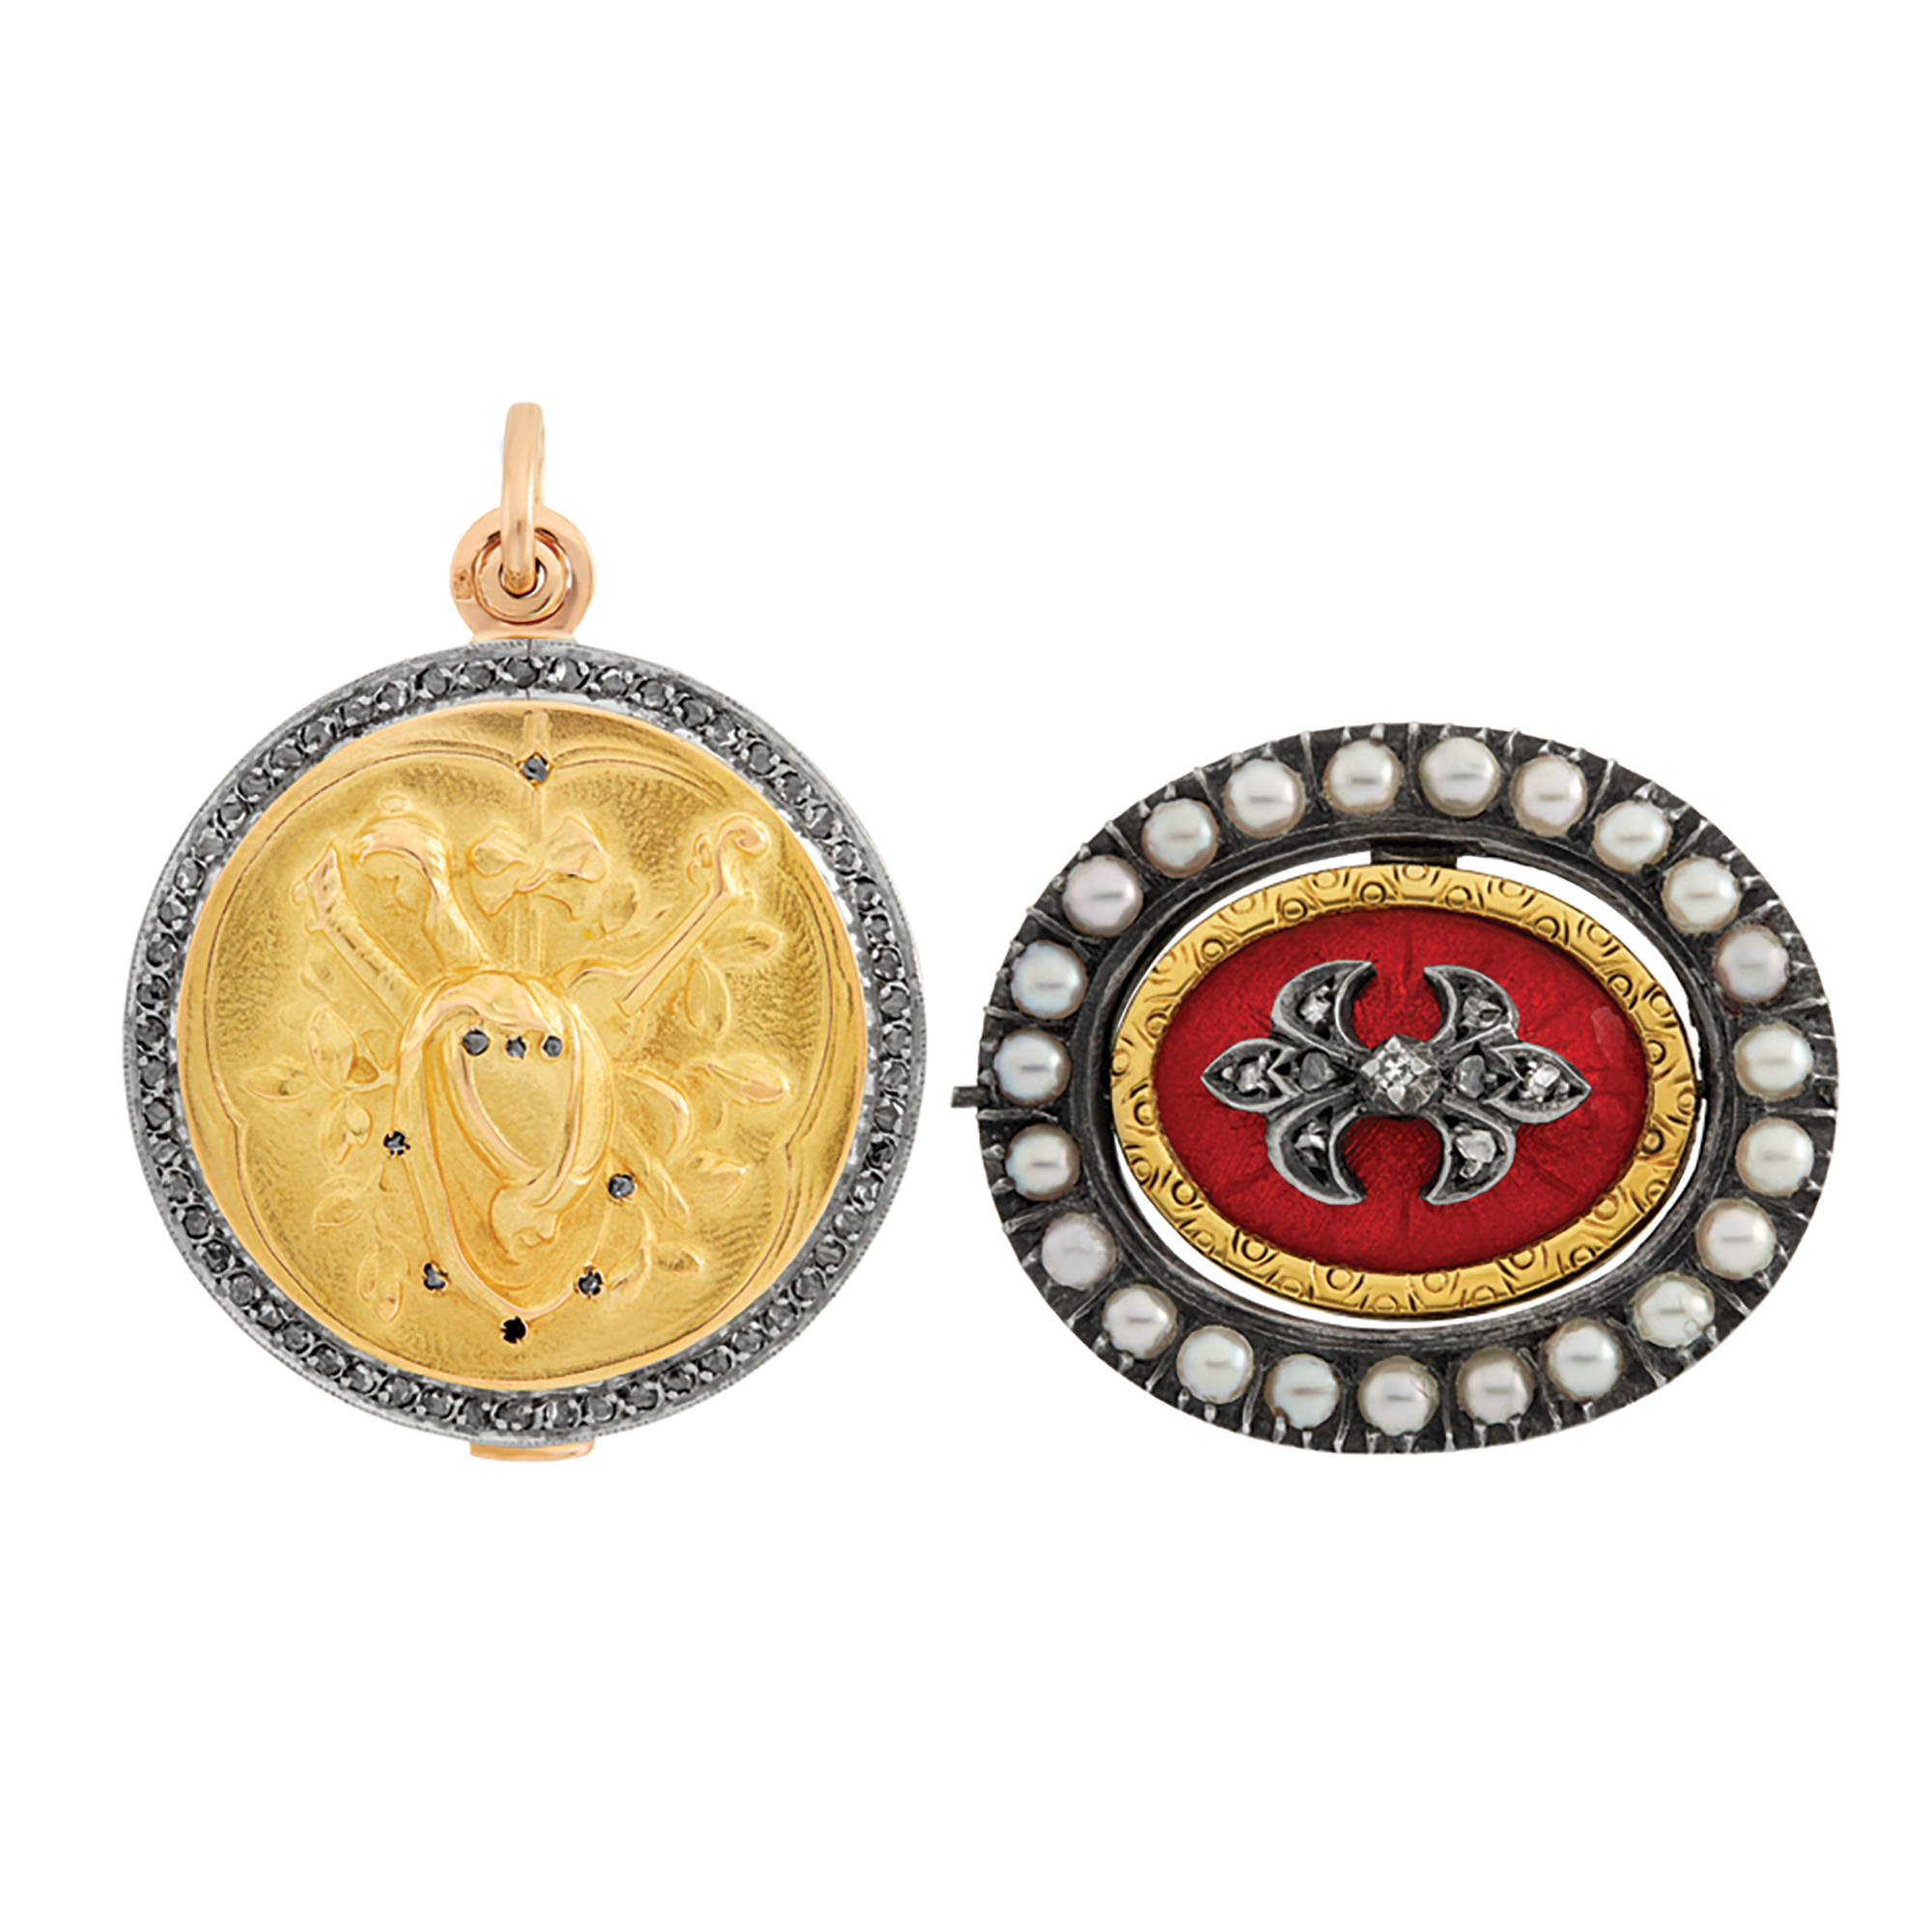 Lot image - Antique Platinum-Topped Gold and Diamond Pendant-Locket, Gold, Silver, Enamel, Diamond and Pearl Double Sided Brooch